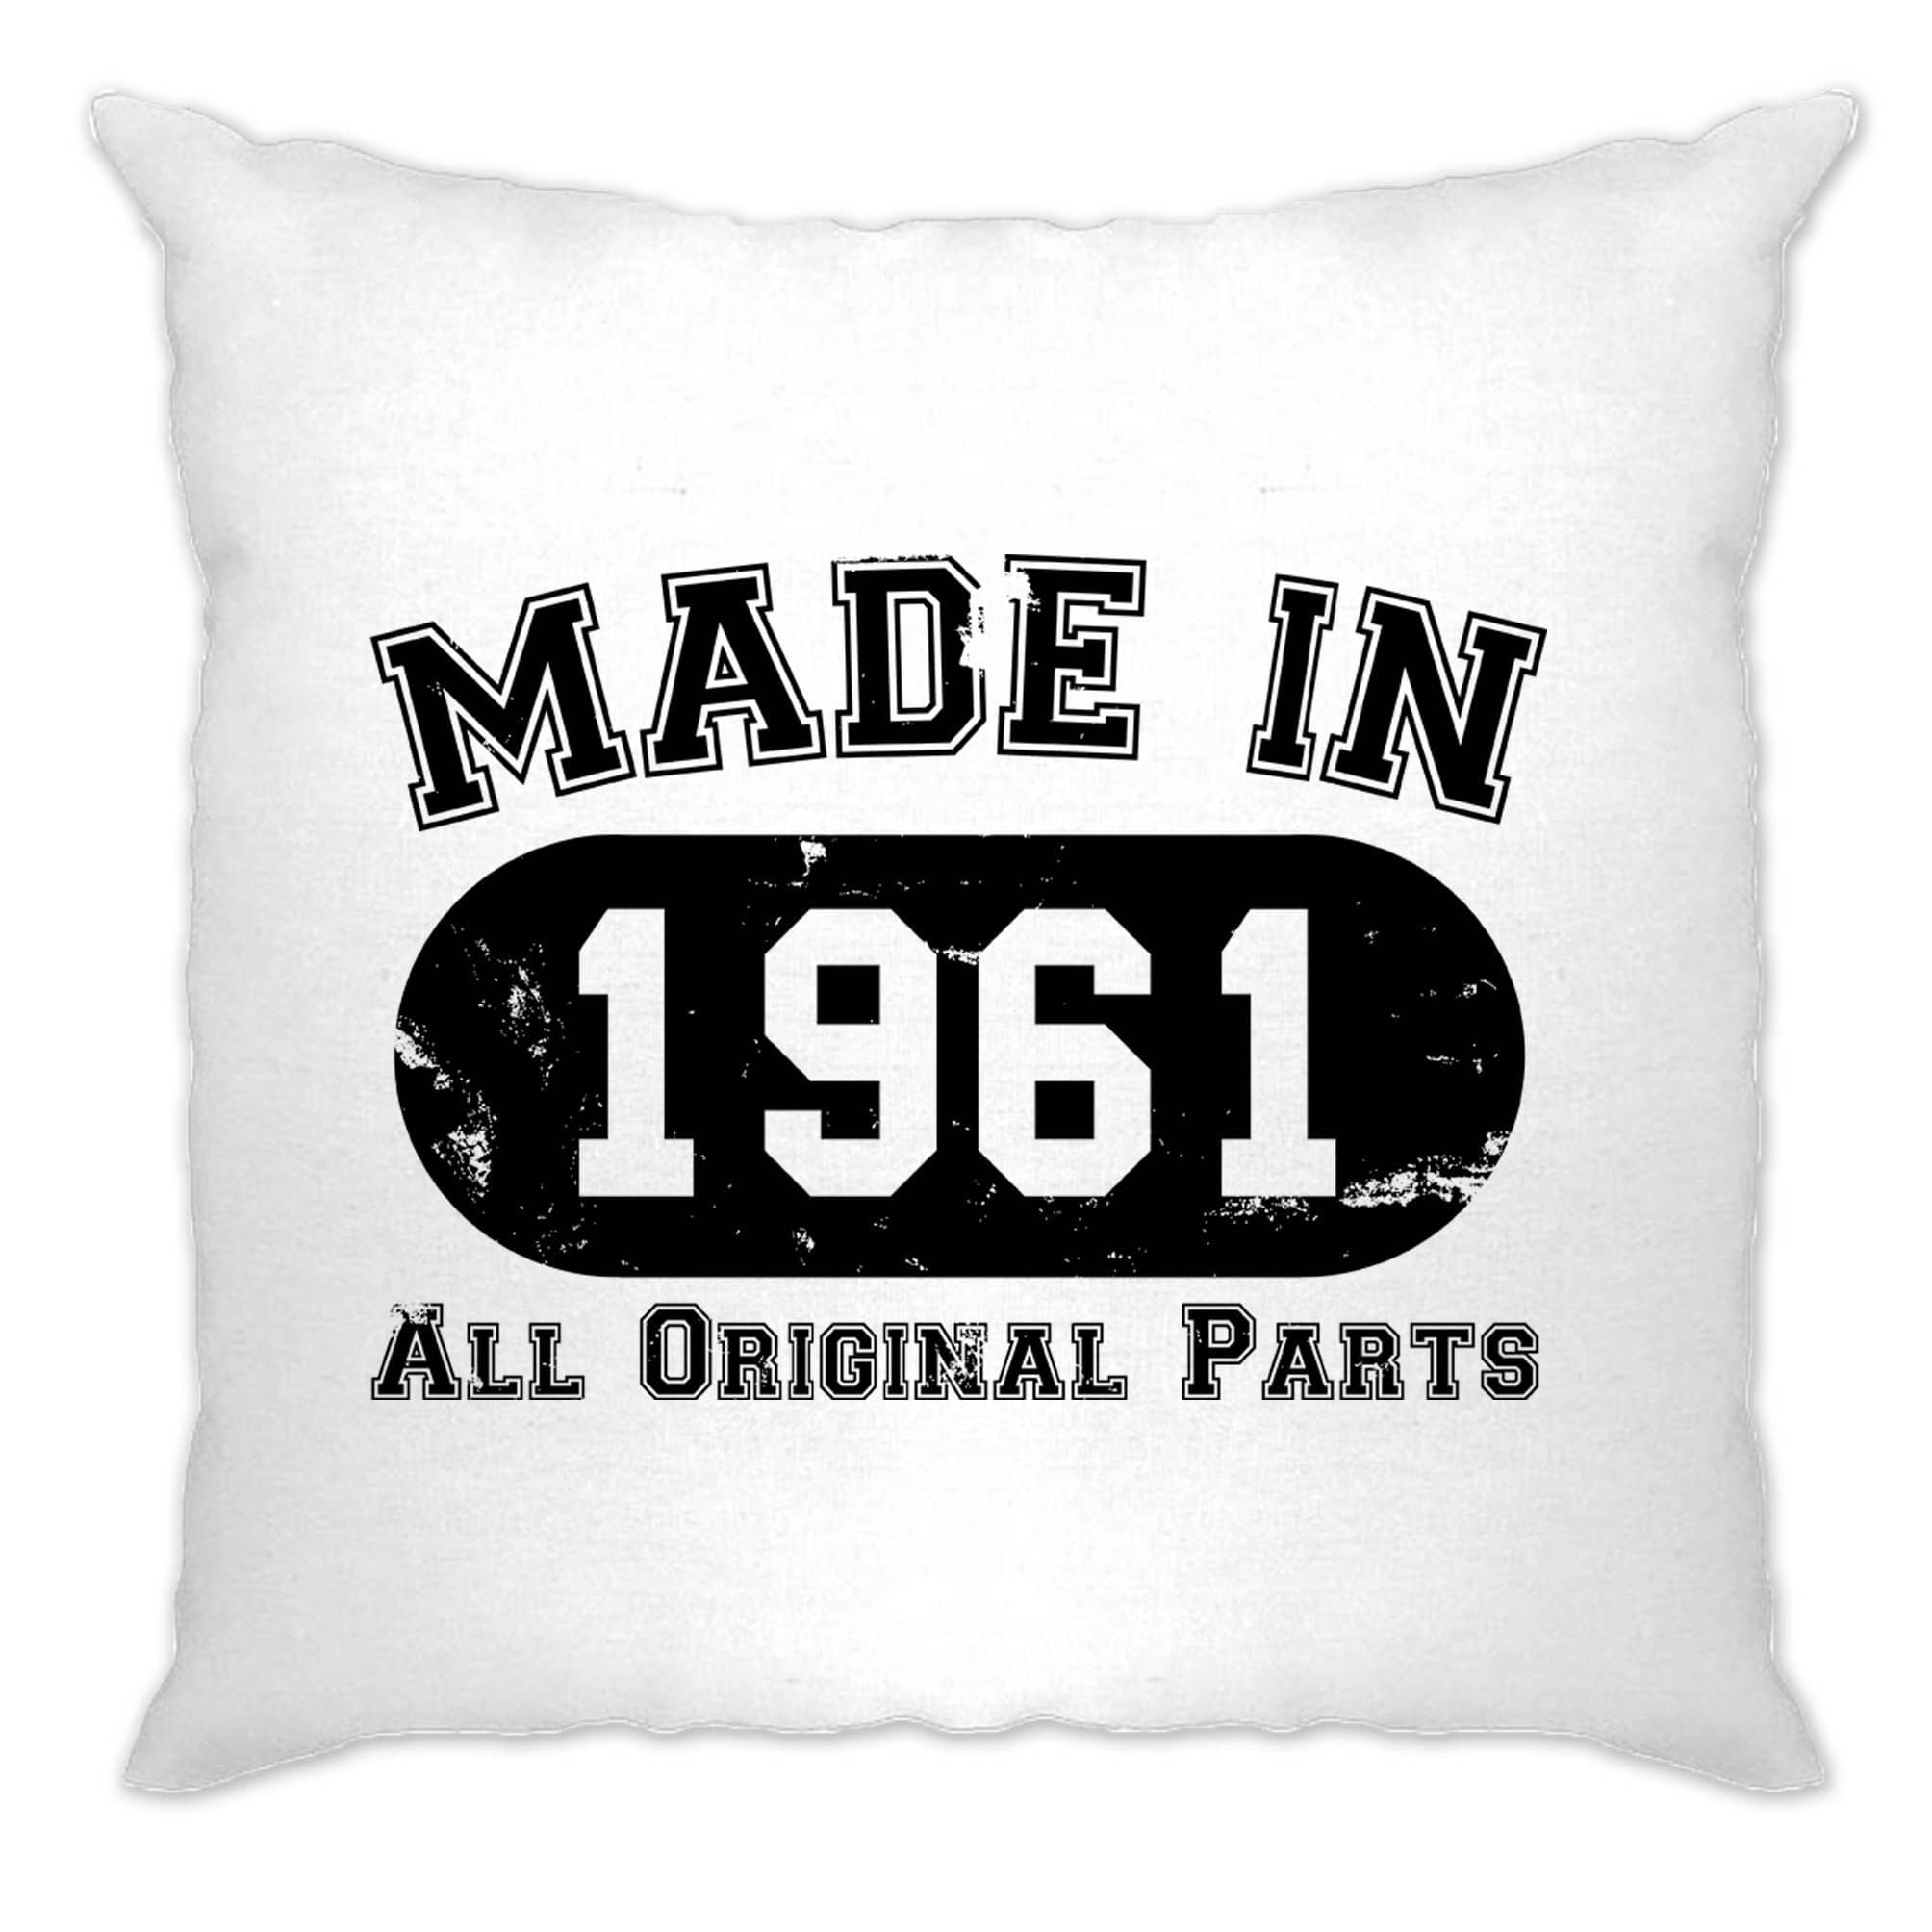 Made in 1961 All Original Parts Cushion Cover [Distressed]